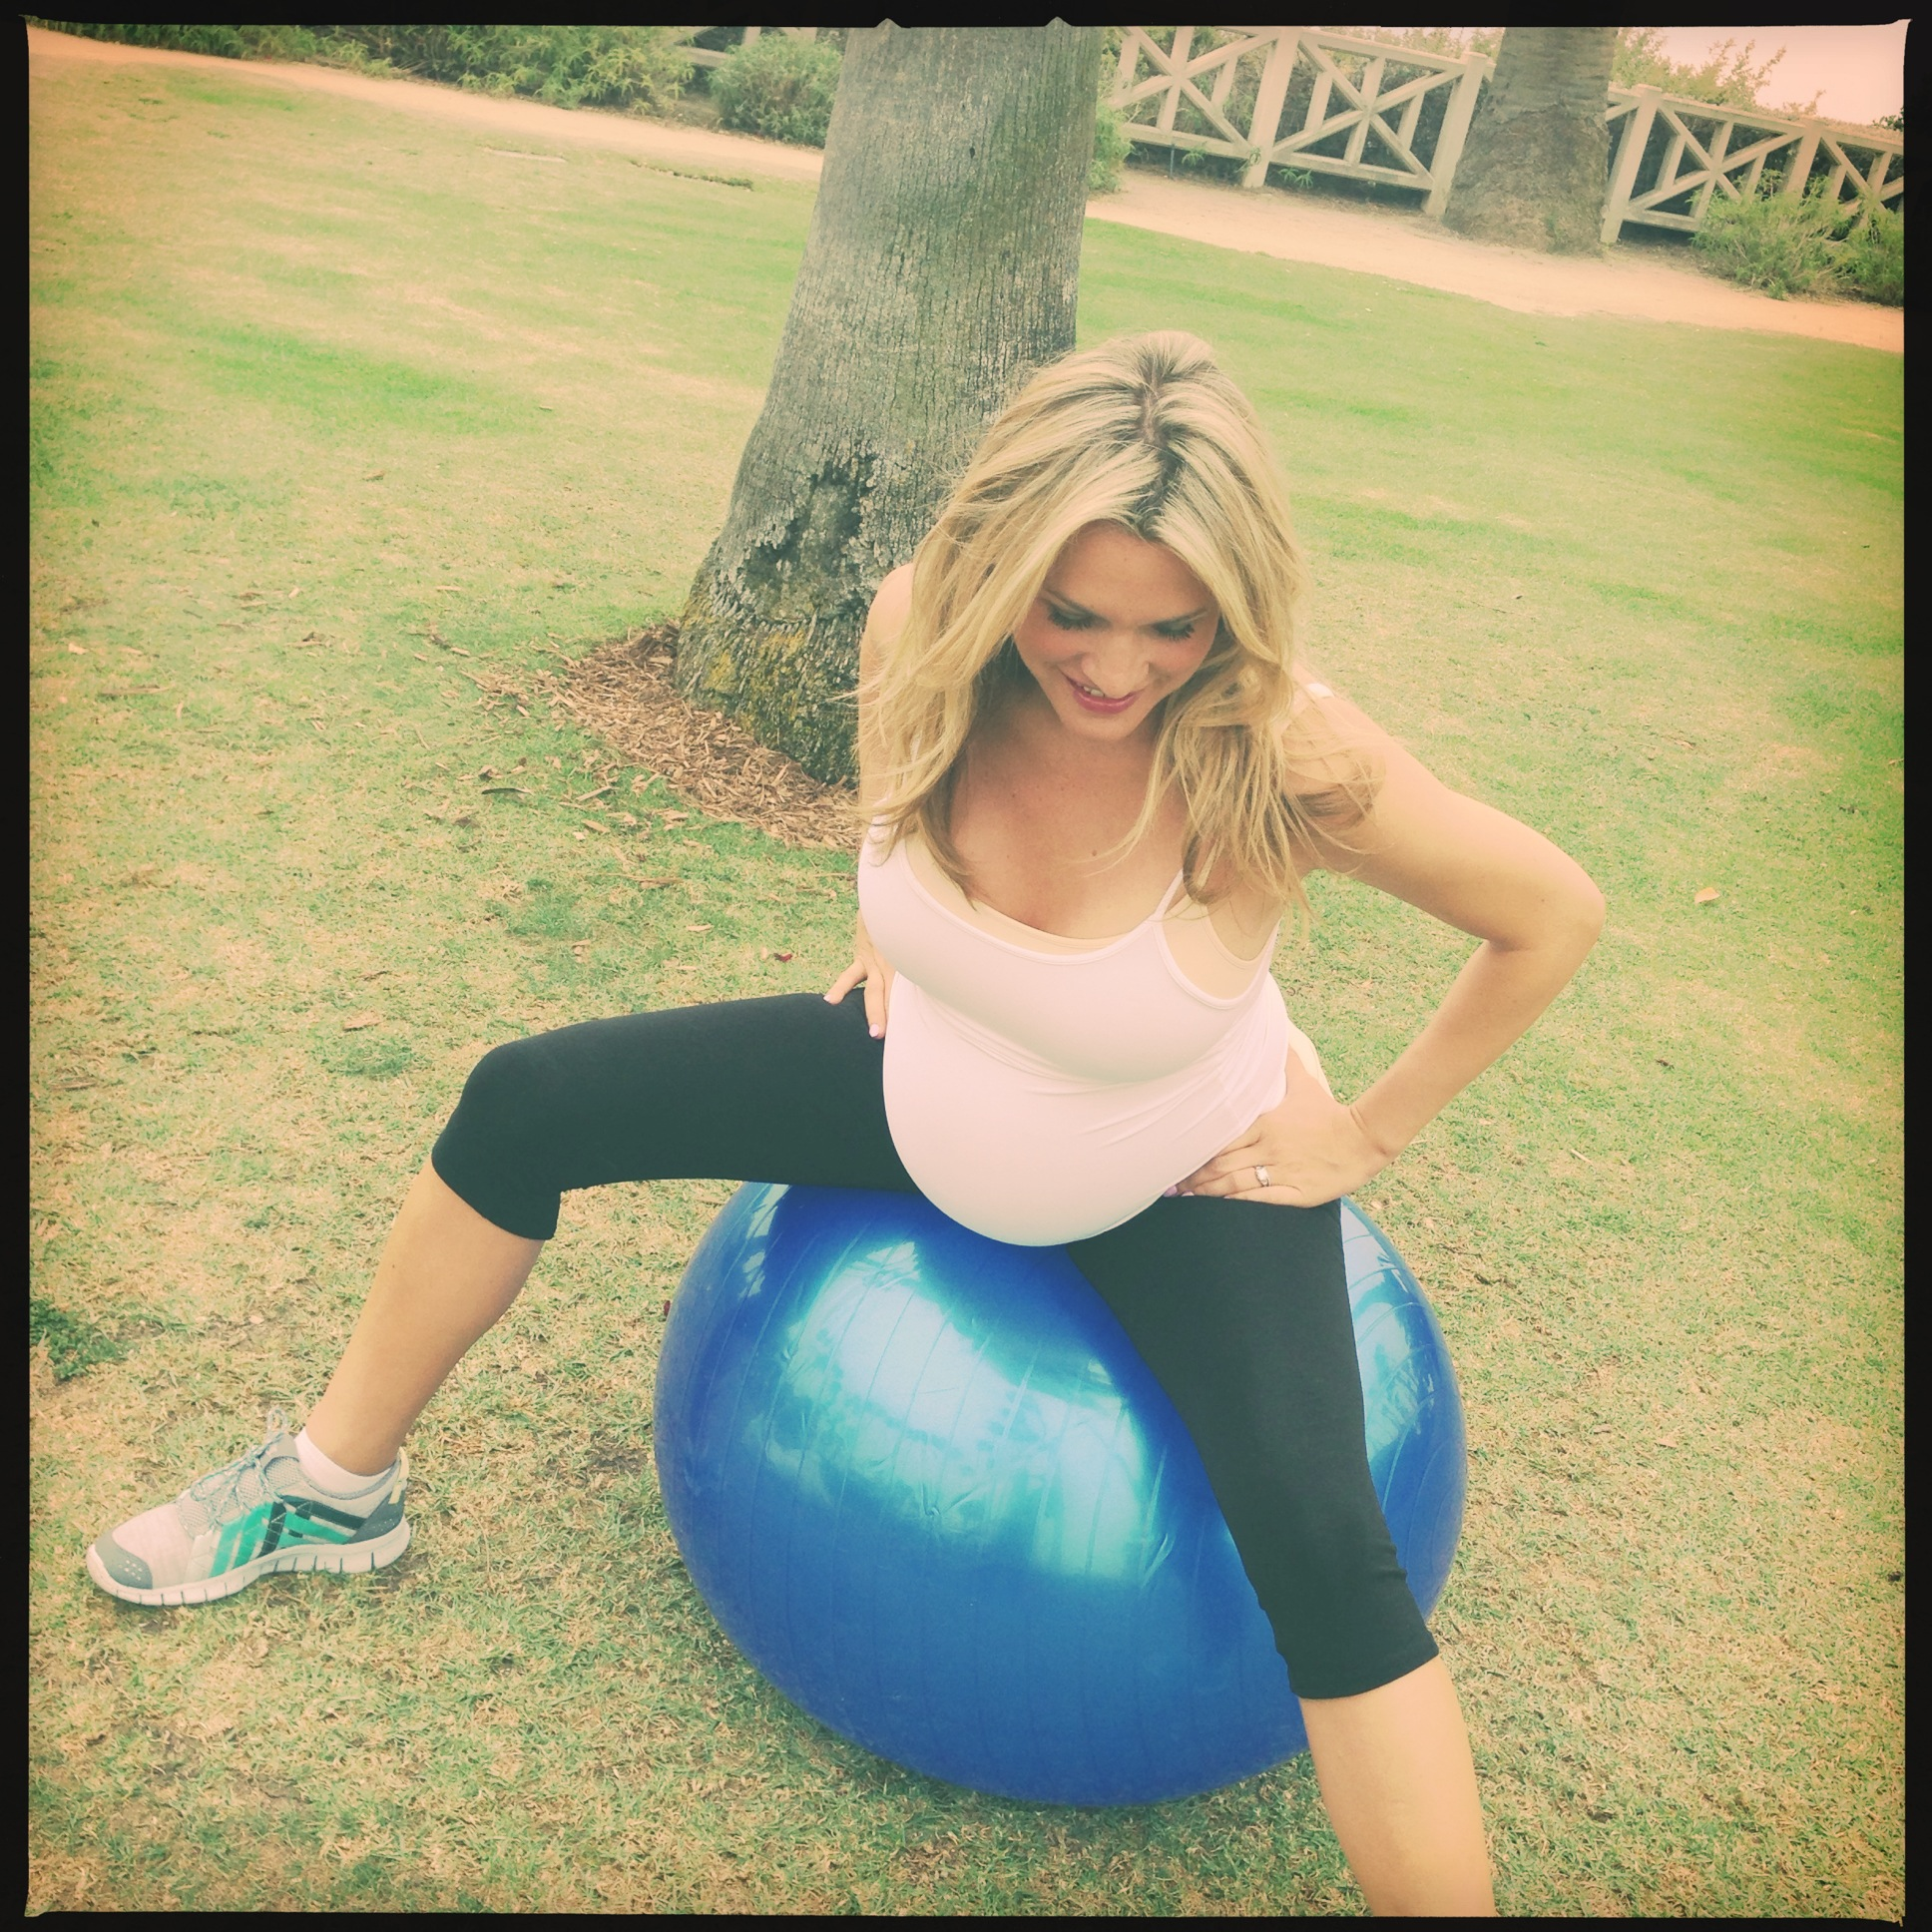 Balance Ball Exercises For Pregnancy: 301 Moved Permanently